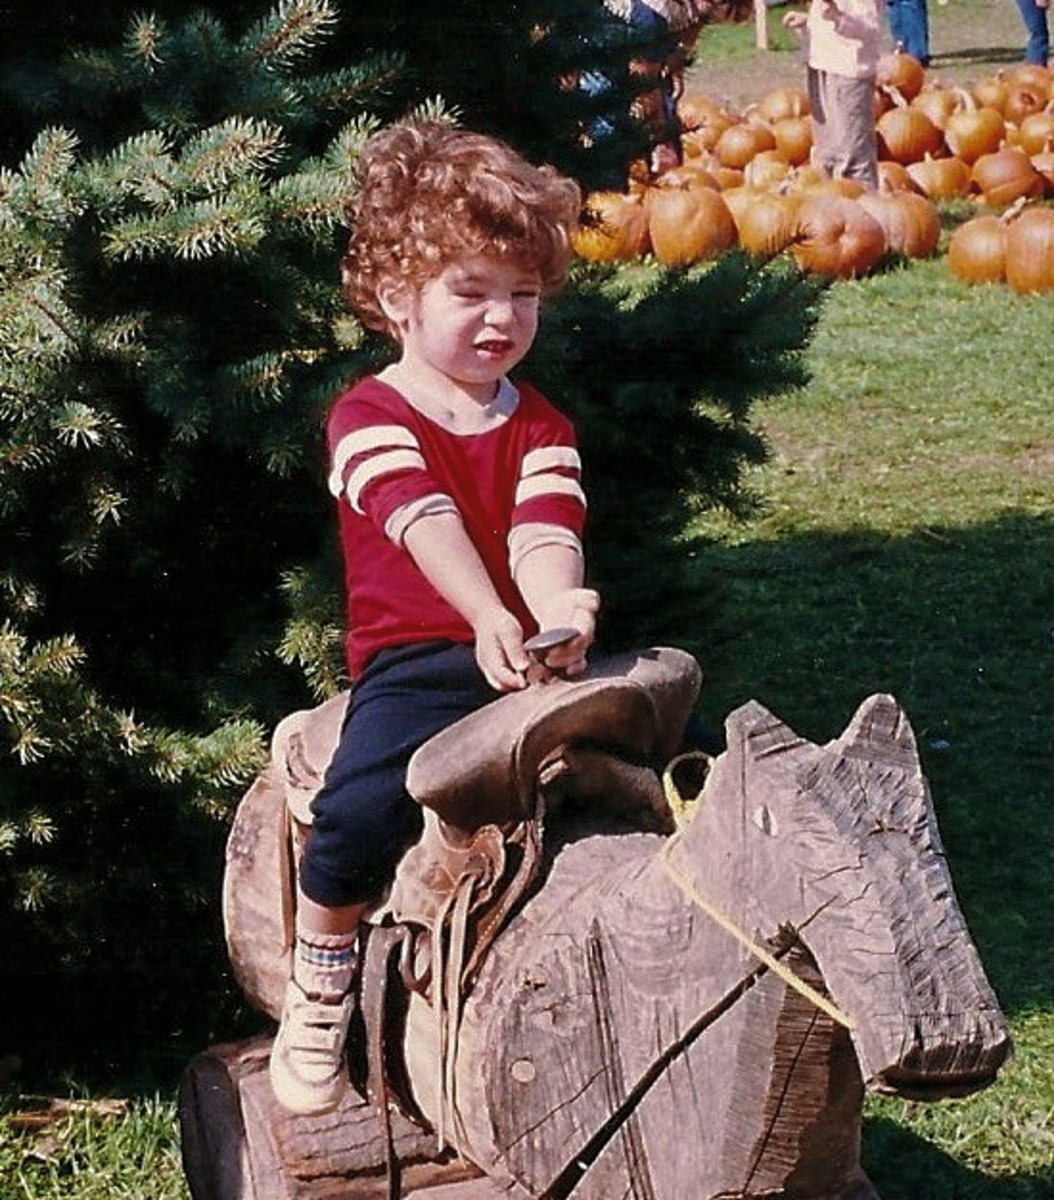 A playground at a local pumpkin farm offers all kinds of fun!